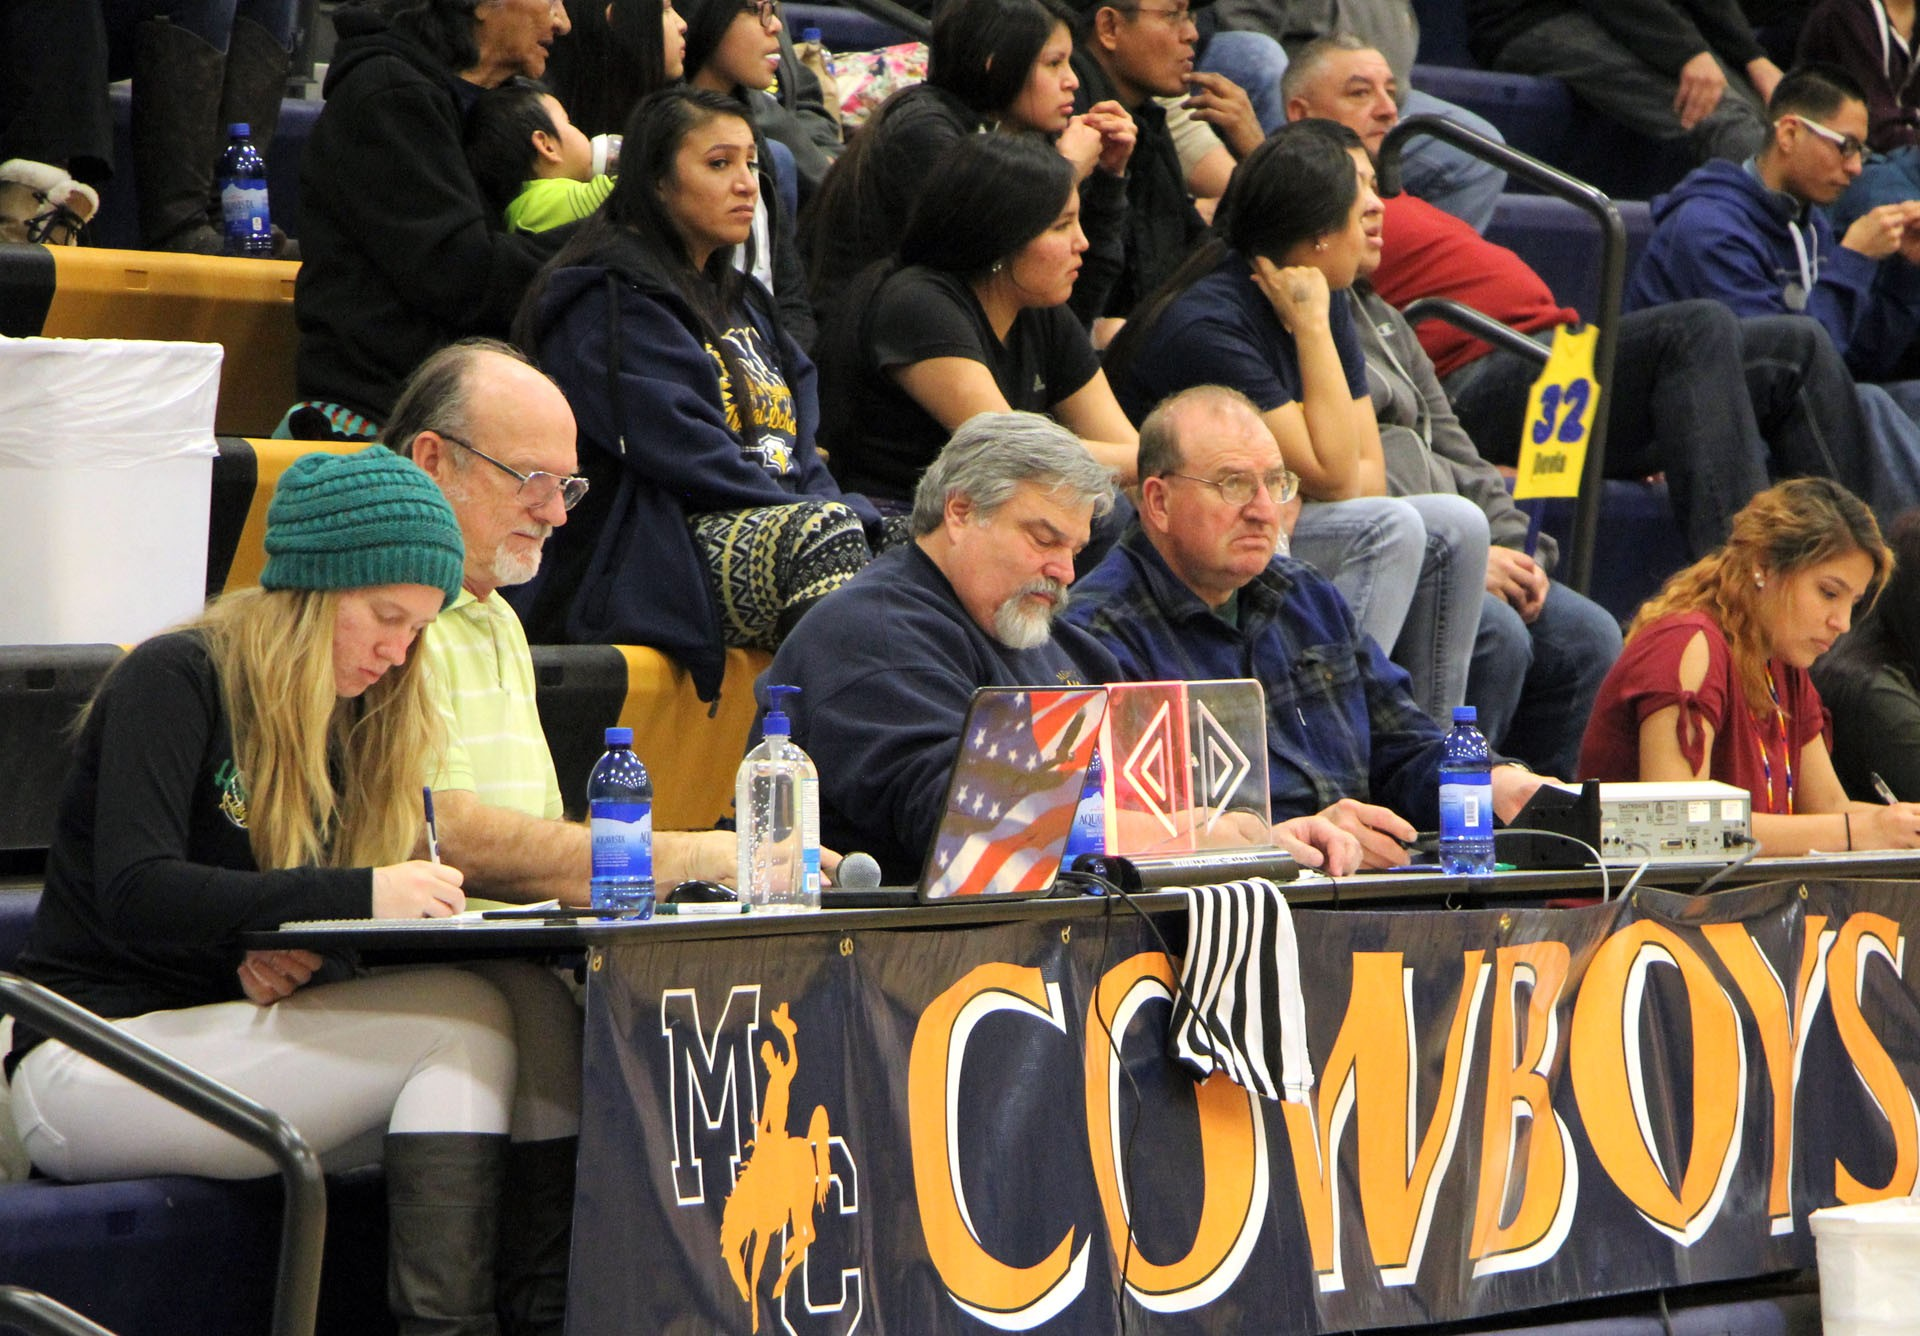 The scorer's table at the Montana Class 4C basketball tournament in Miles City has several volunteers workers, from students doing the scoring for their teams to adults doing the public address announcing, official scorebook and clock management. From left are Brooke Burley, Broadus; Darrell Neese, announcer from Miles City; John Laney, Executive Director of the Miles City Area Chamber of Commerce (official scorer); Doug Mangen of Miles City (clock), and Jean-Al Shorty, Northern Cheyenne.STAR PHOTO/Sharon Moore